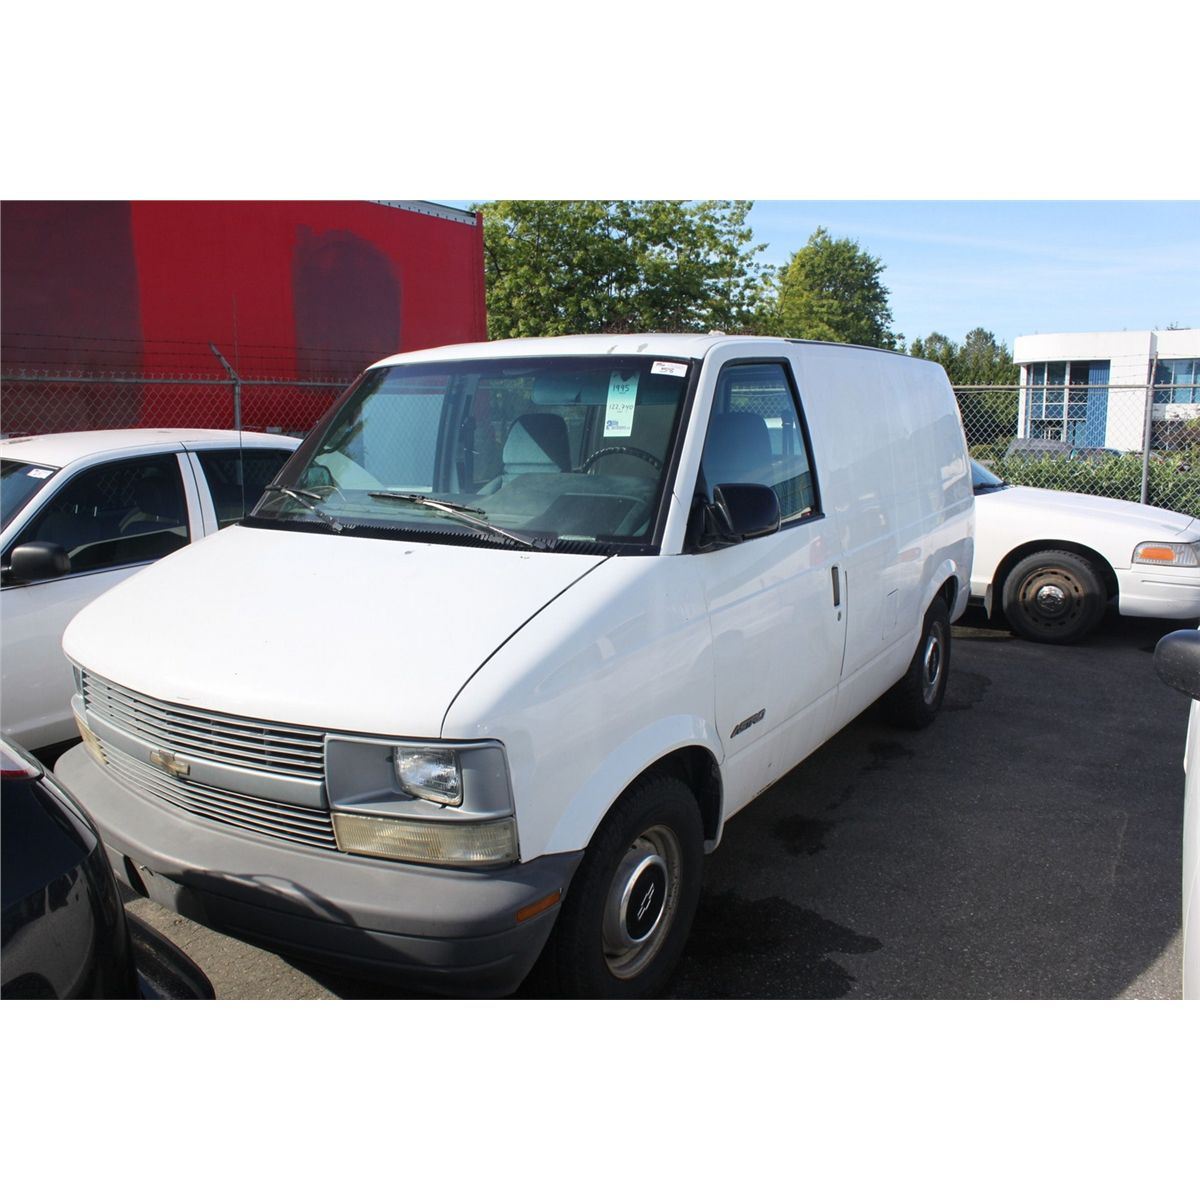 hight resolution of image 1 1995 white chevy astro cargo van